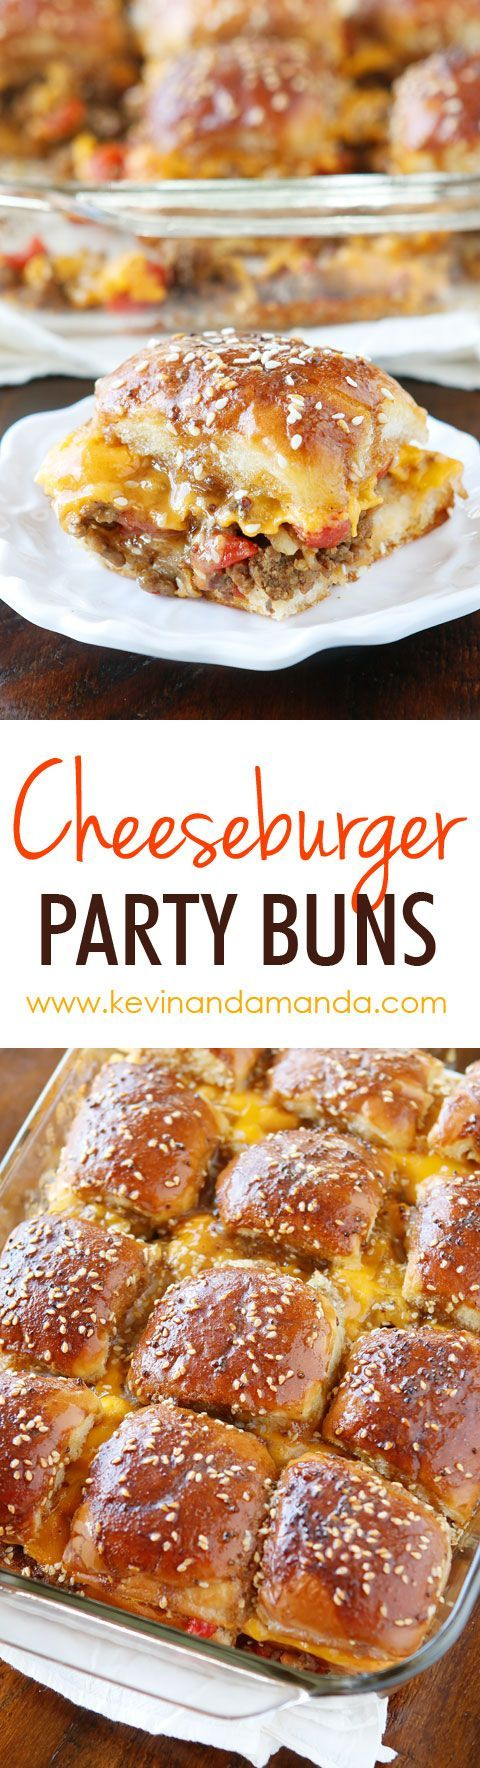 nike shoe for men These Cheesy Party Burgers are so fun Great to serve to a crowd or just to make dinner fun Perfect for parties because you can make them the night before and cook the next day If you want to start the party make these Cheesy Party Burgers